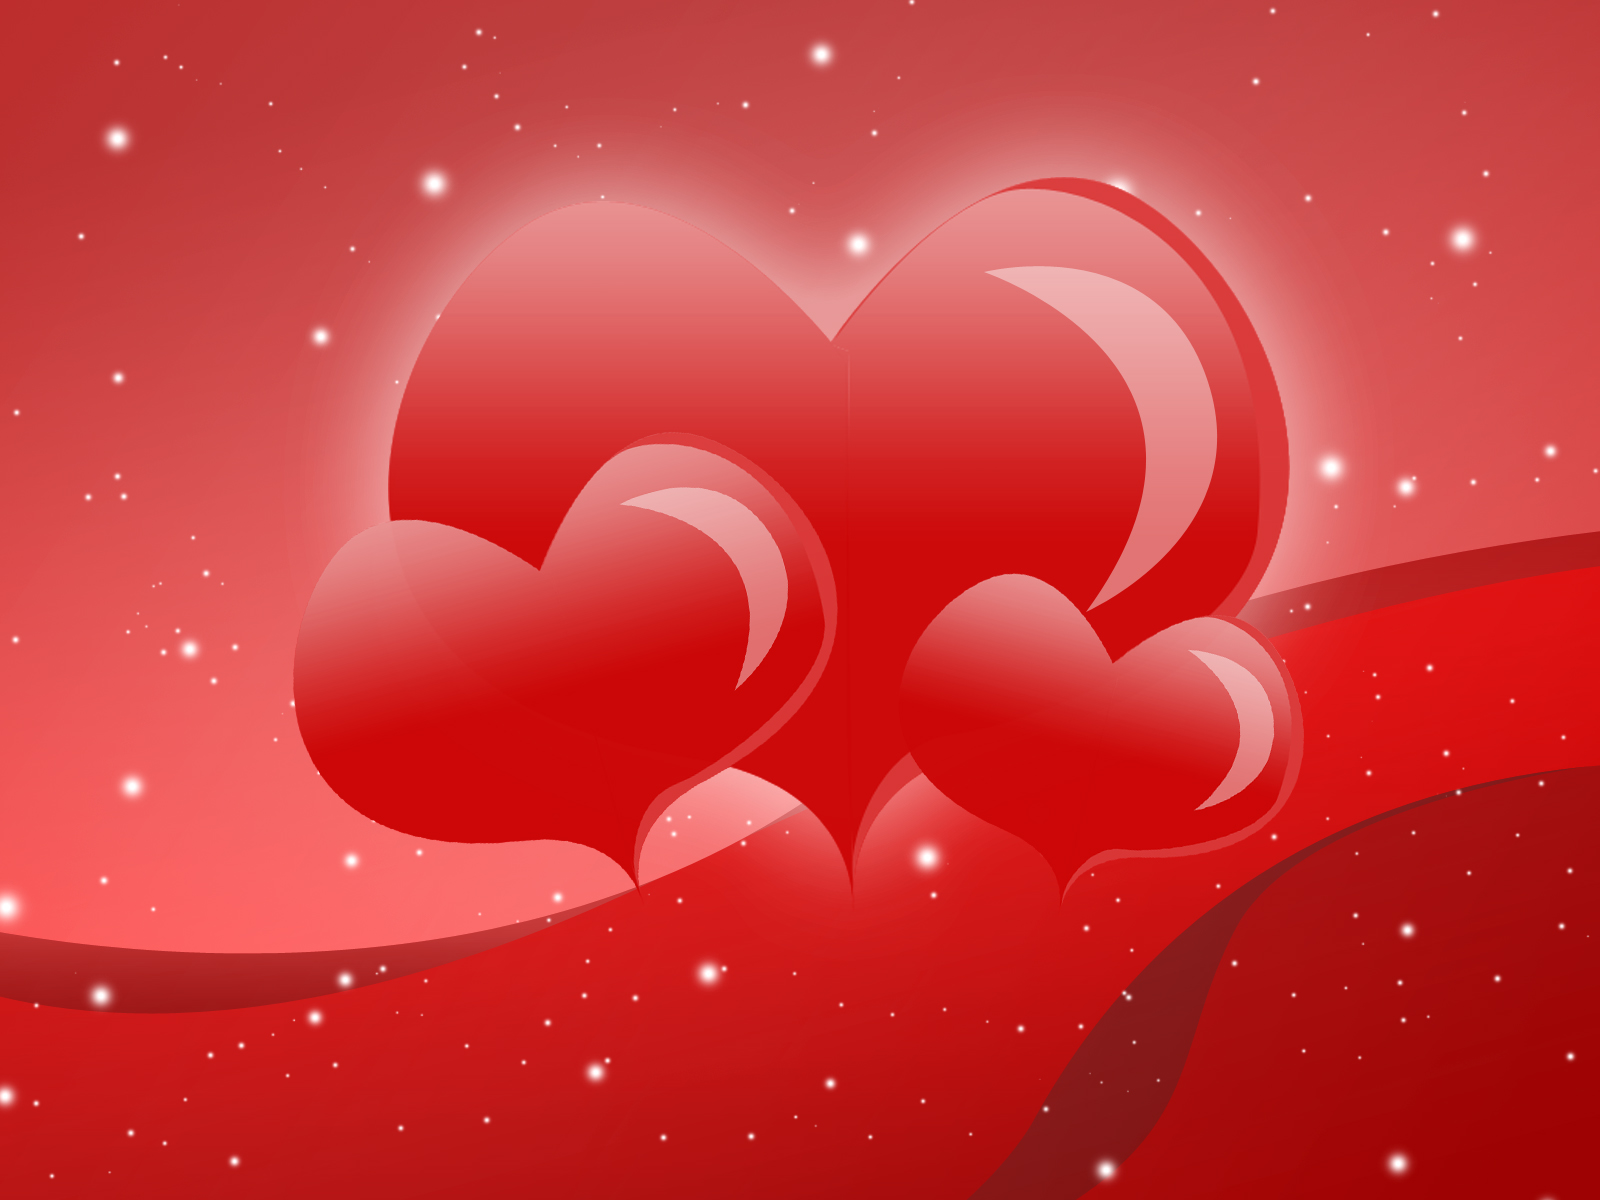 valentines day backgrounds wallpapers - photo #35